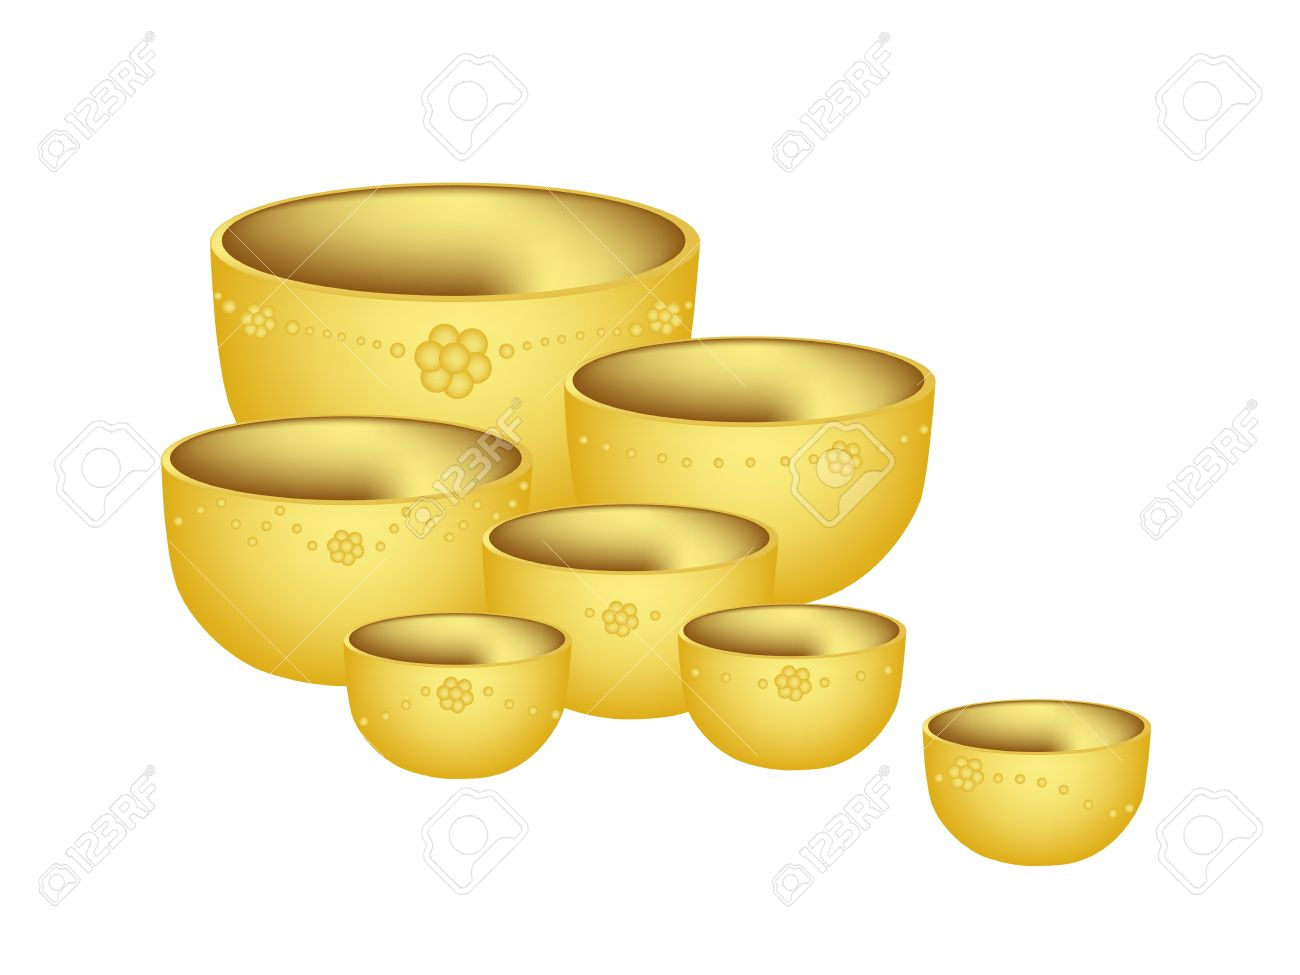 Illustration Various Size Of Golden Empty Bowls Isoleted On White.